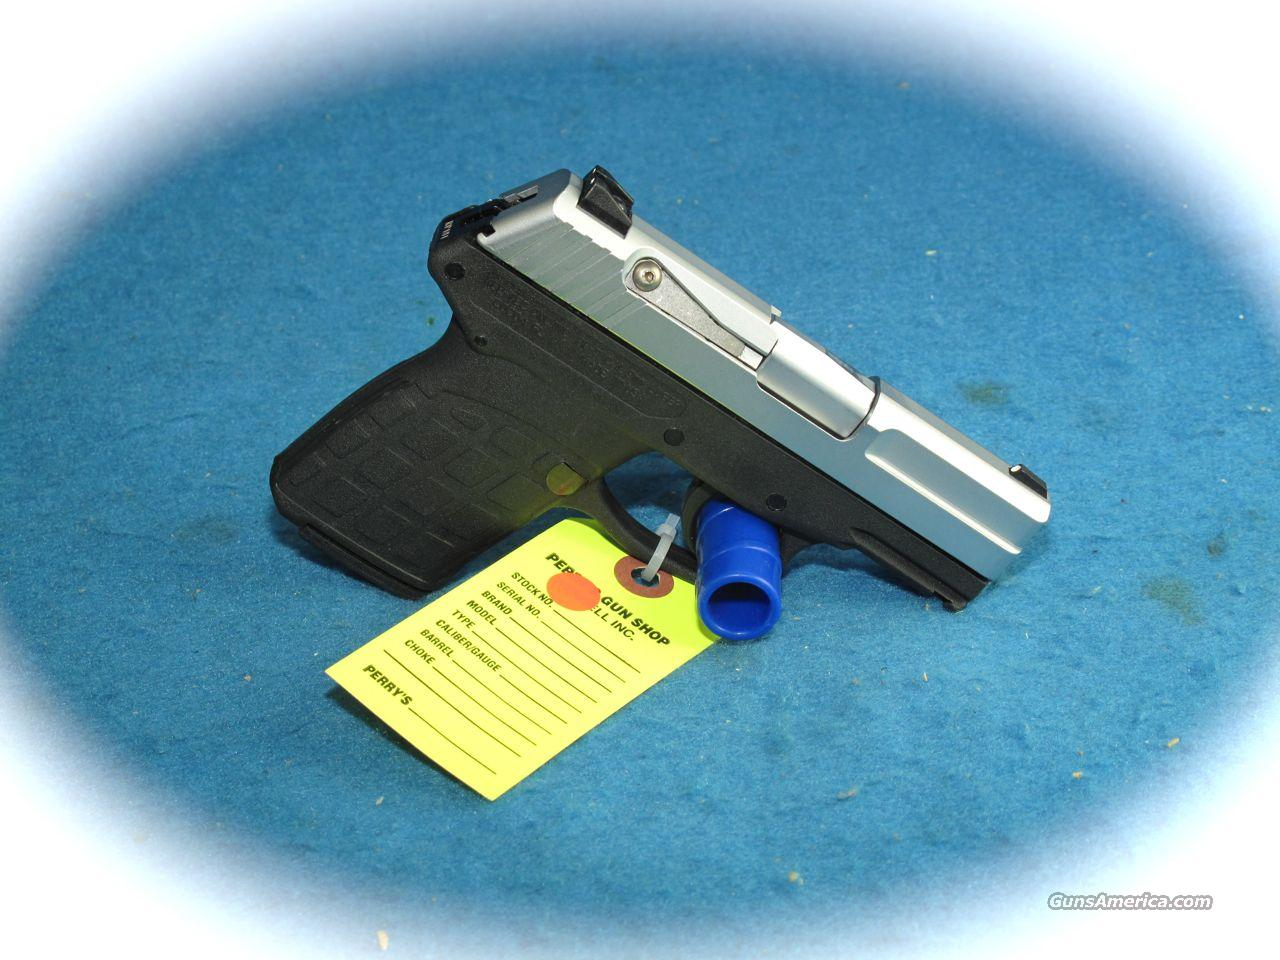 Kel-Tec PF9 9mm pistol with DeSantis Holster **Used**  Guns > Pistols > Kel-Tec Pistols > Pocket Pistol Type